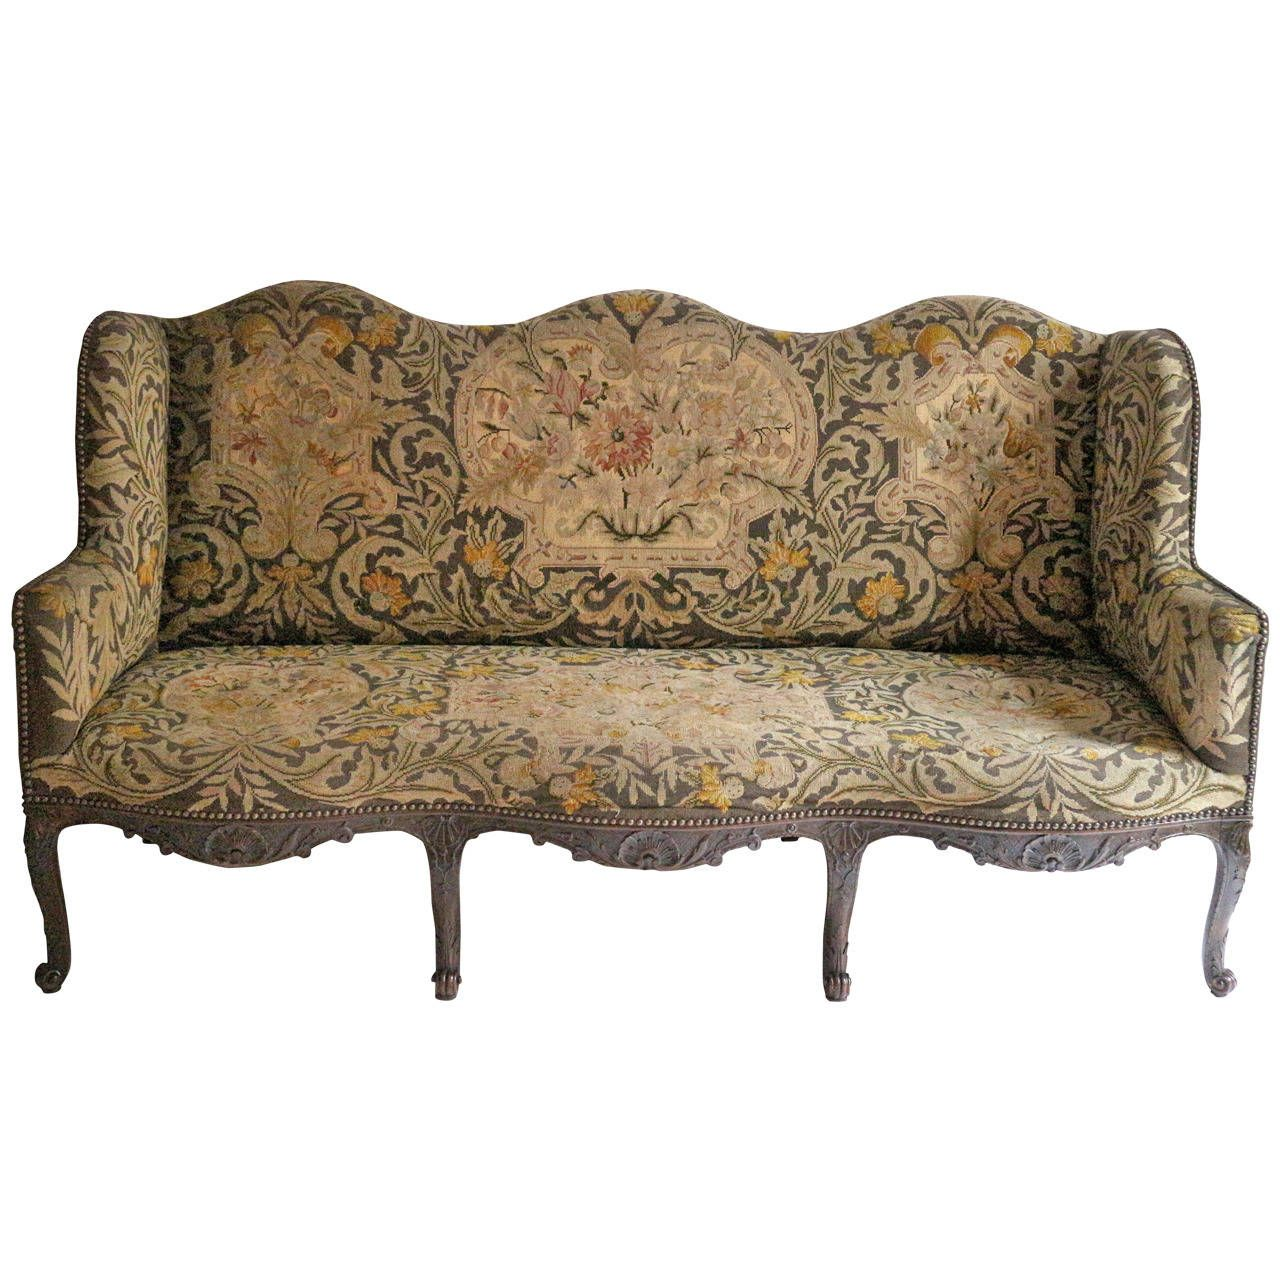 Mid 19th Century Three Seat Louis Vx Style Sofa With Original Tapestry 1stdibs